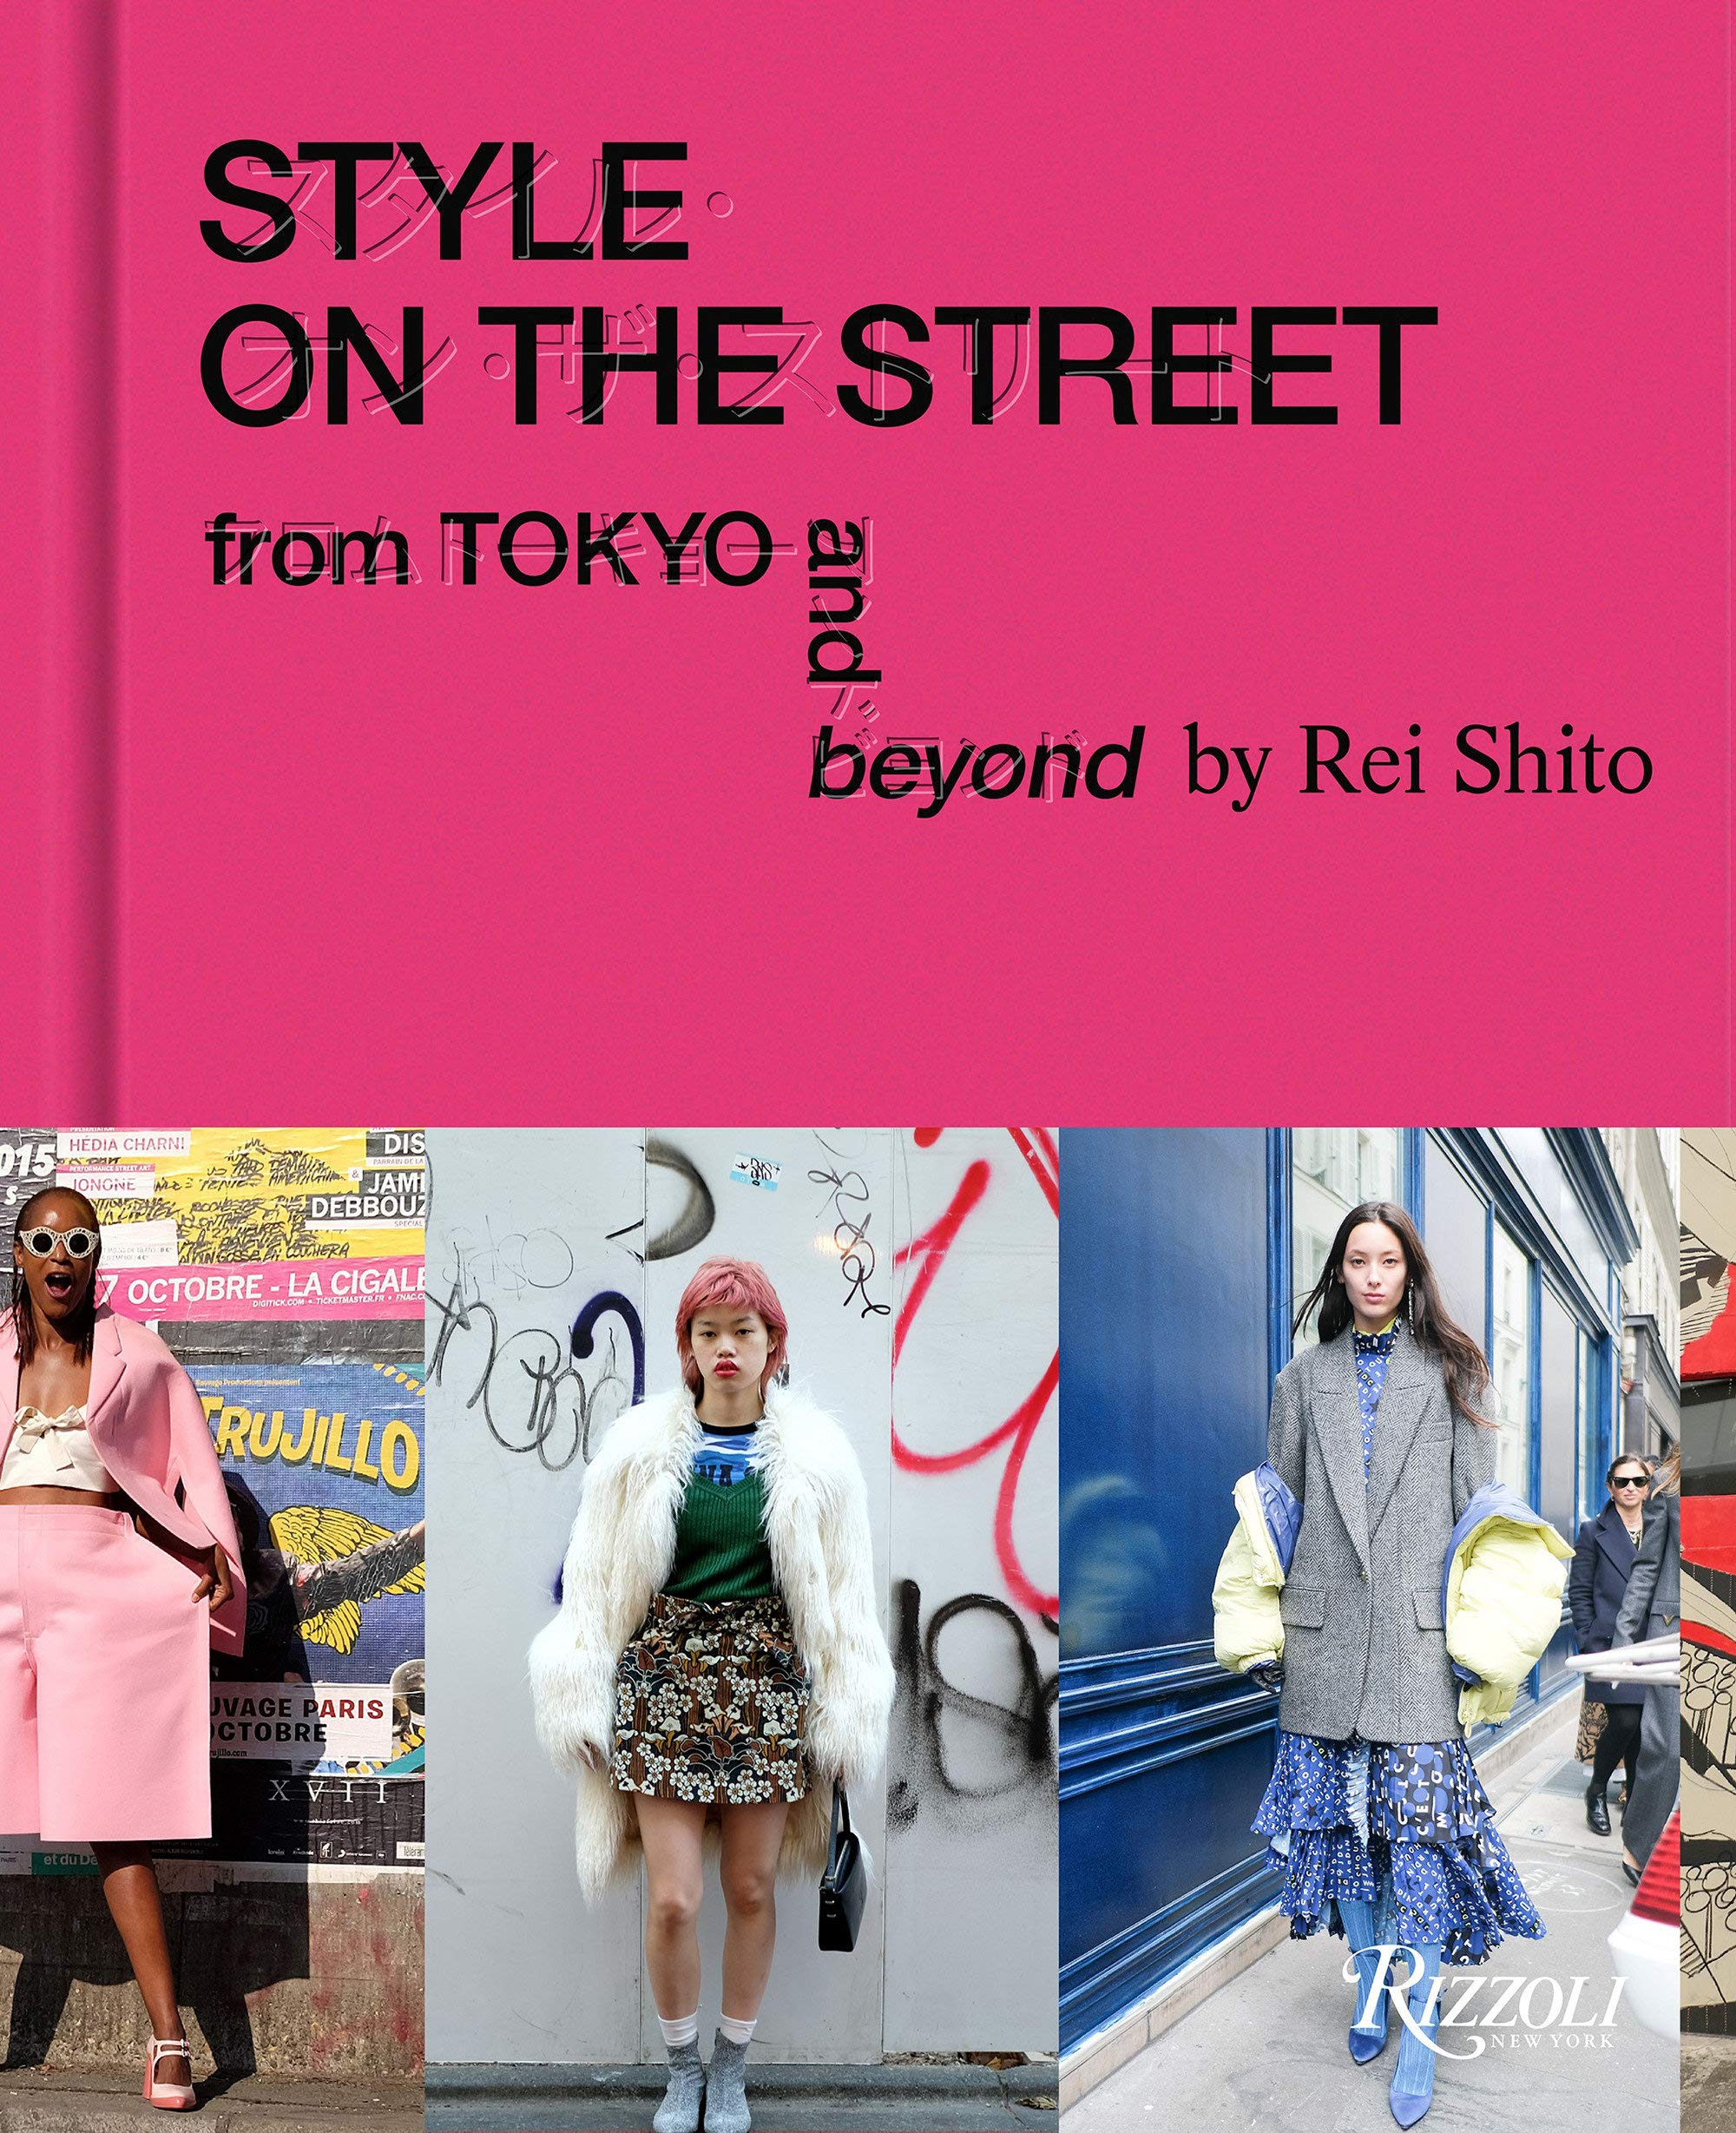 Rei Shito(2020)『STYLE ON THE STREET from TOKYO and beyond』Rizzoli